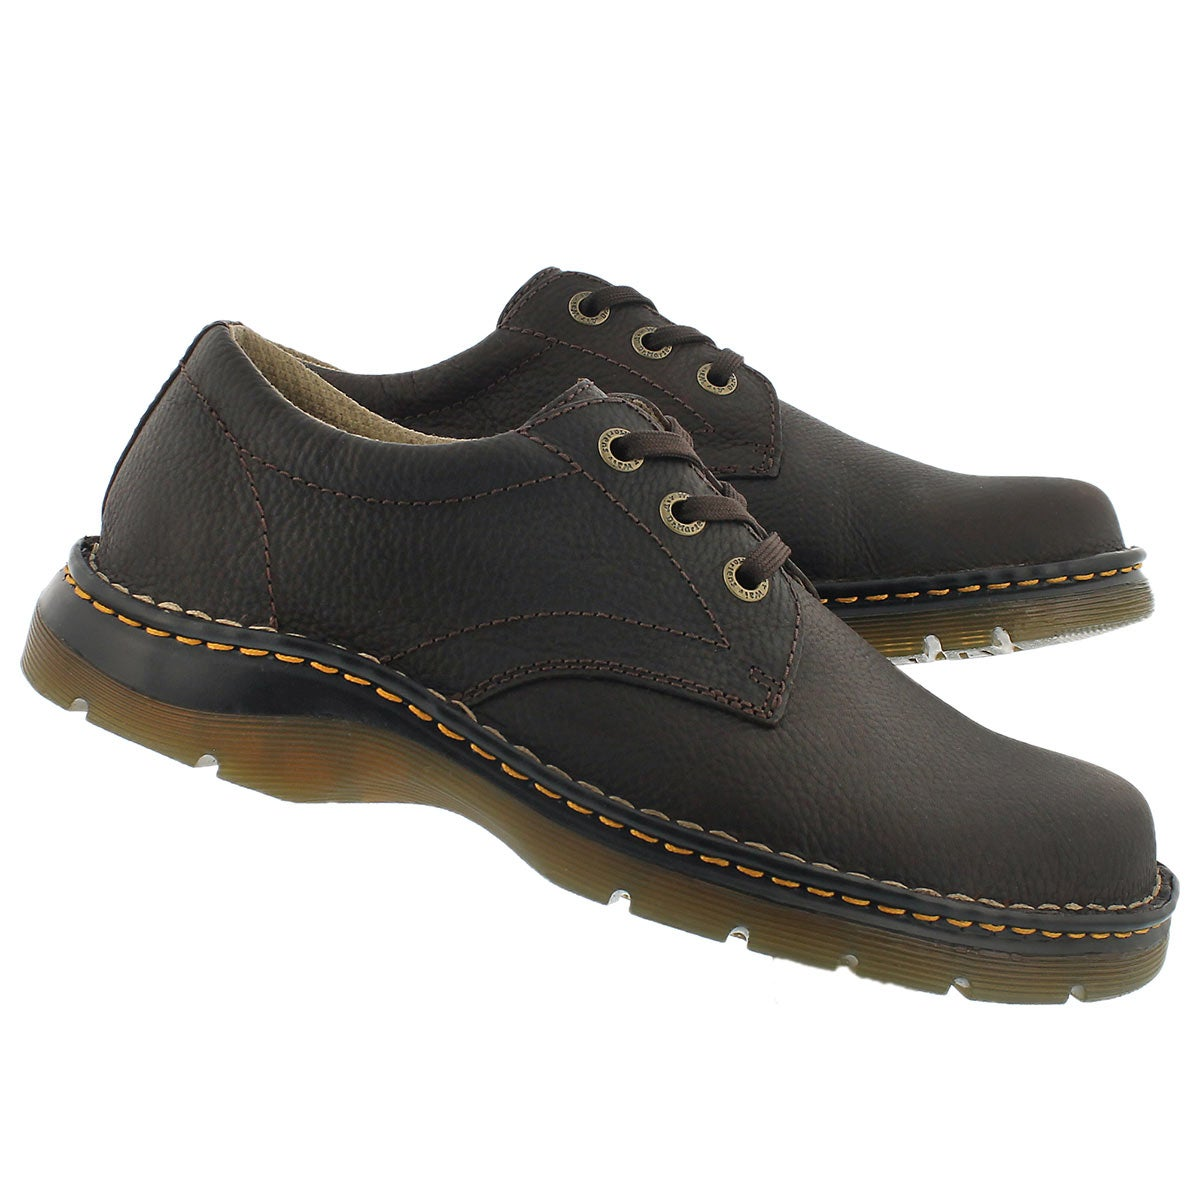 Mns Ordell dark brown 3 eye oxford.